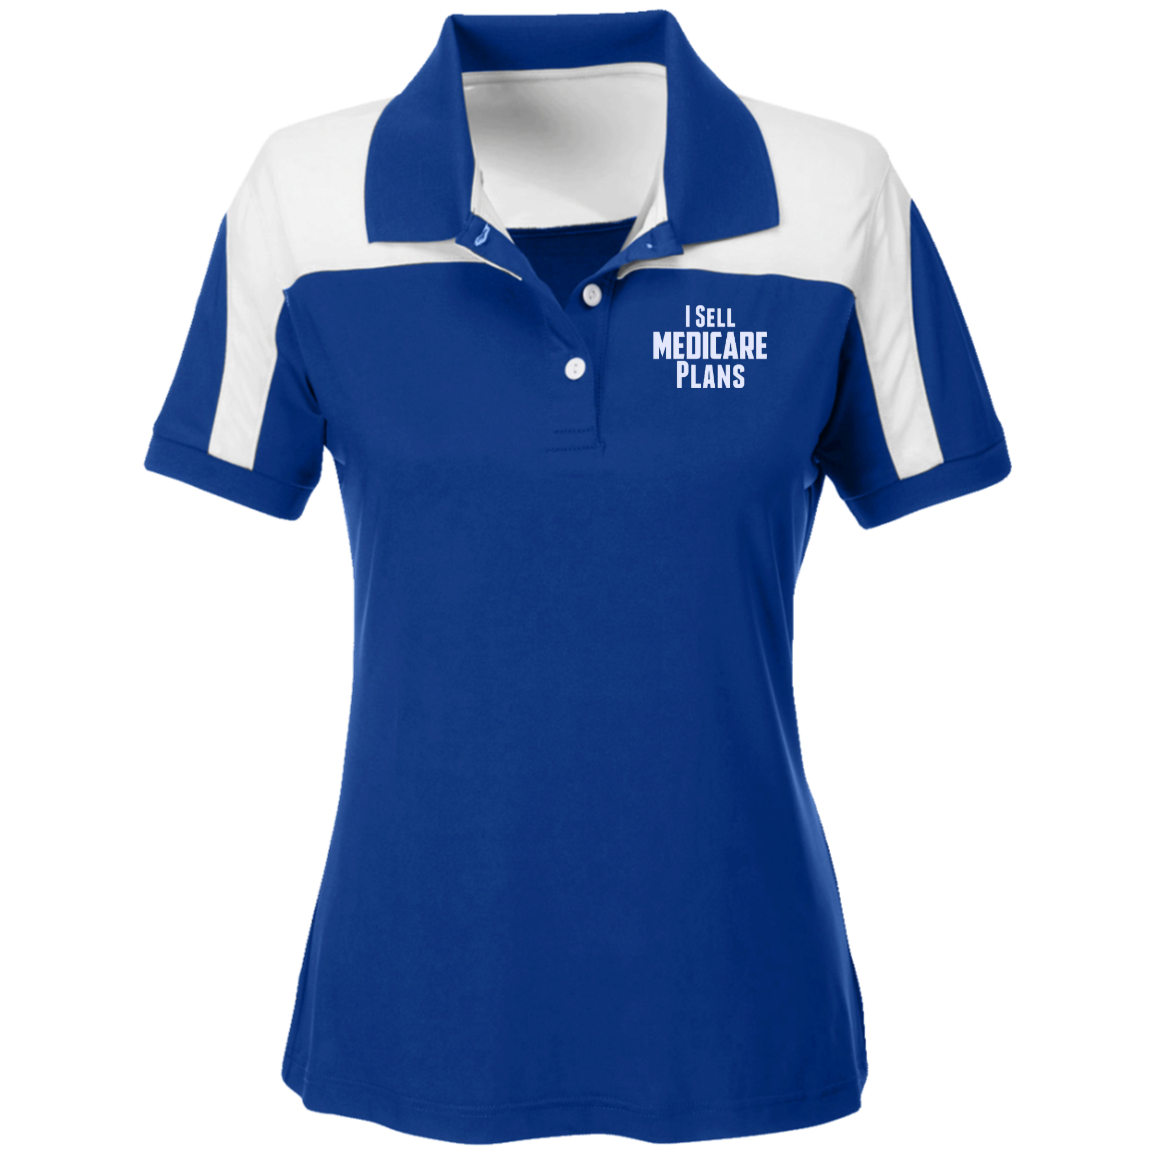 I Sell Medicare Plans Team 365 Ladies' Colorblock Polo